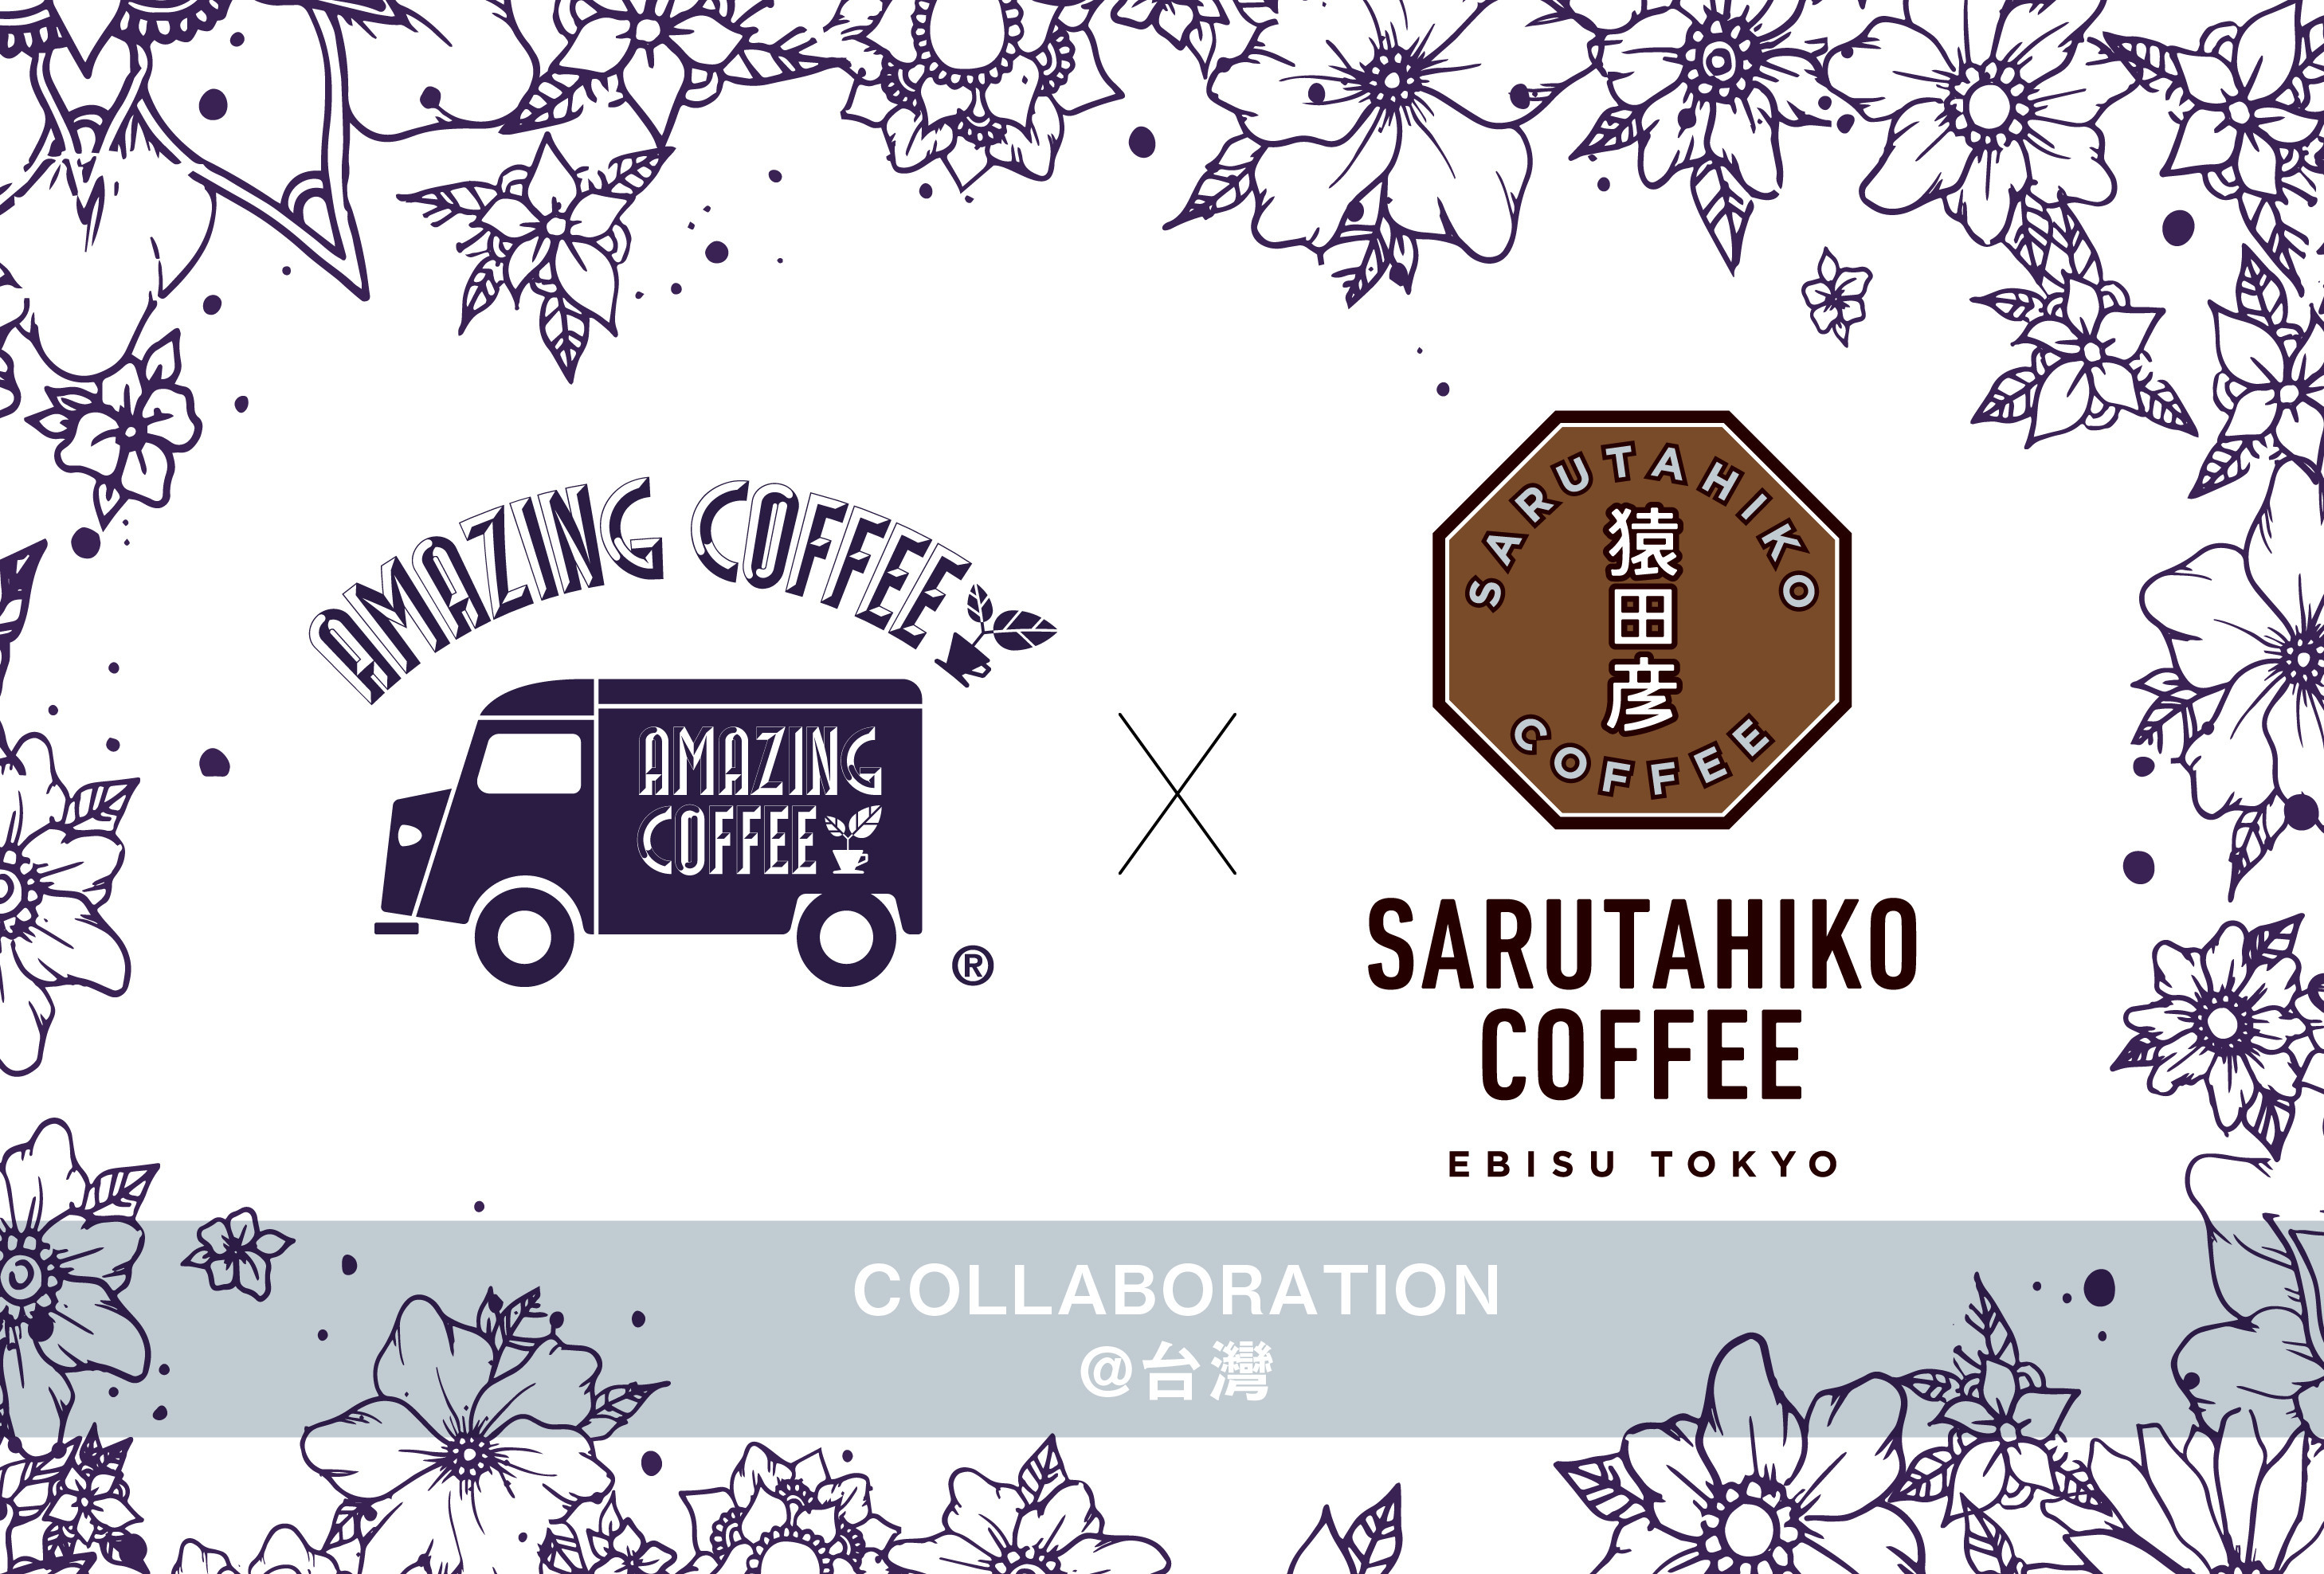 【台湾にて初コラボレーション!】✨AMAZING COFFEE × SARUTAHIKO COFFEE TAIWAN☕